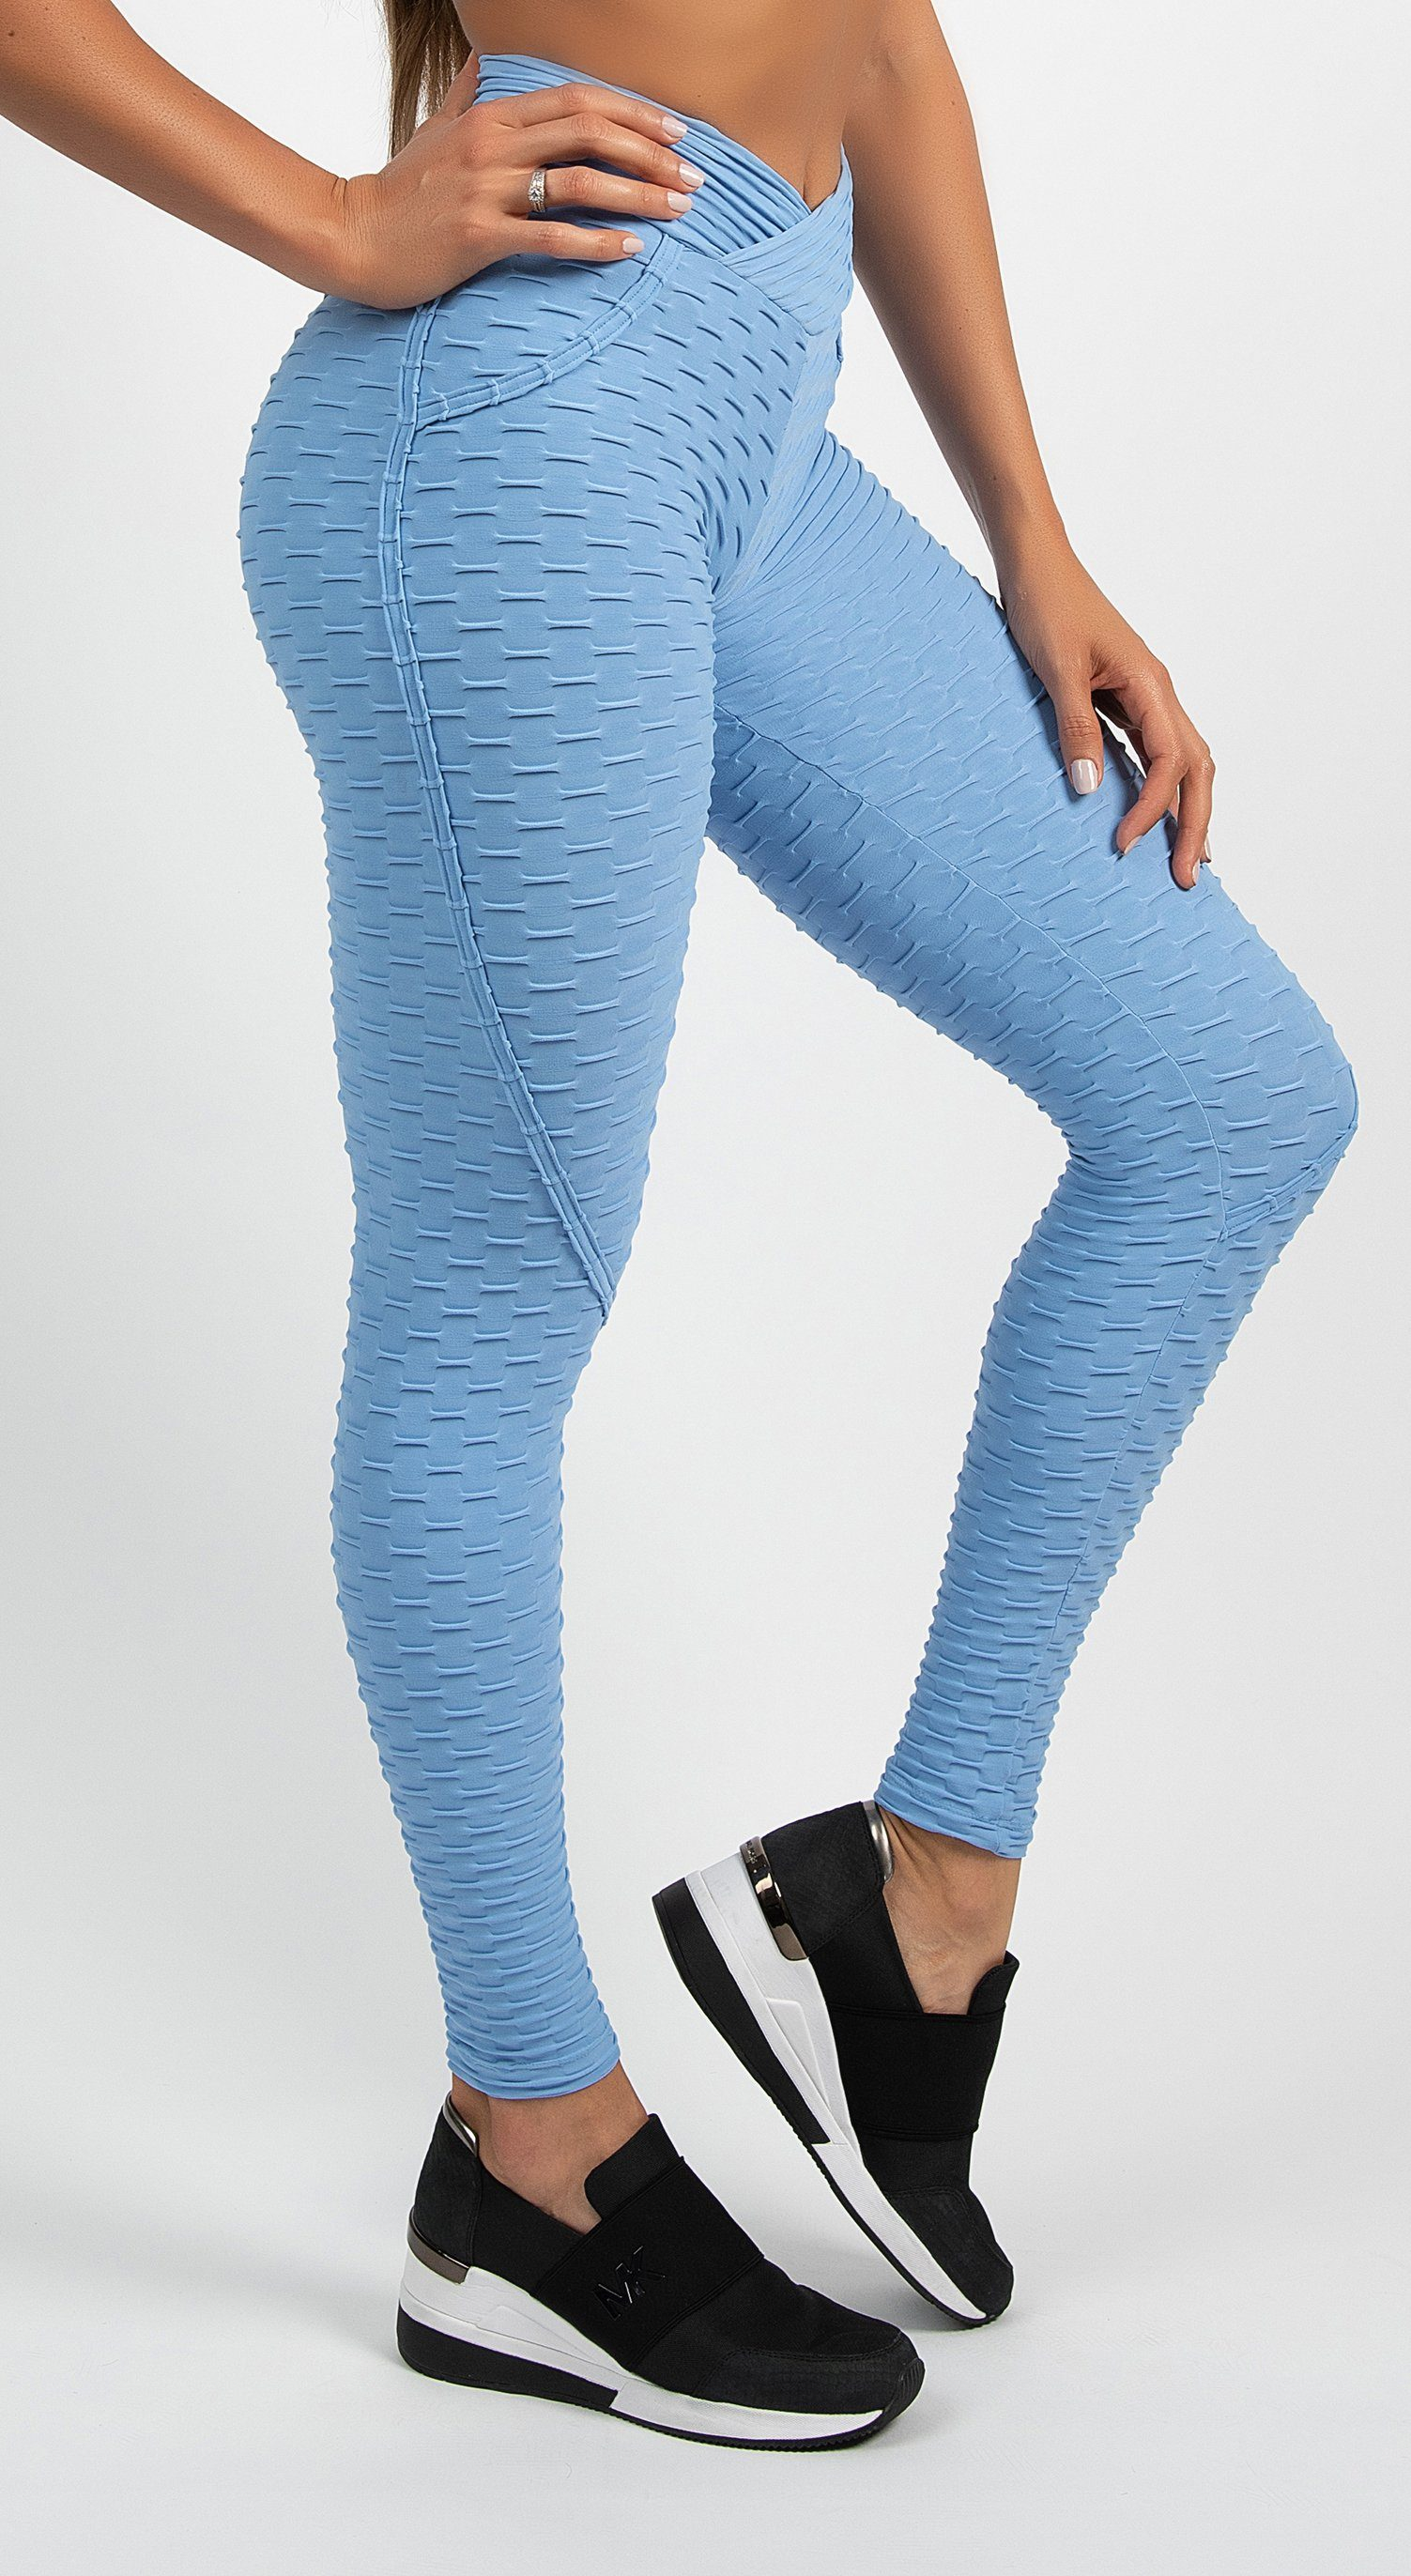 Anti Cellulite Textured Heart Booty Effect Baby Blue Leggings